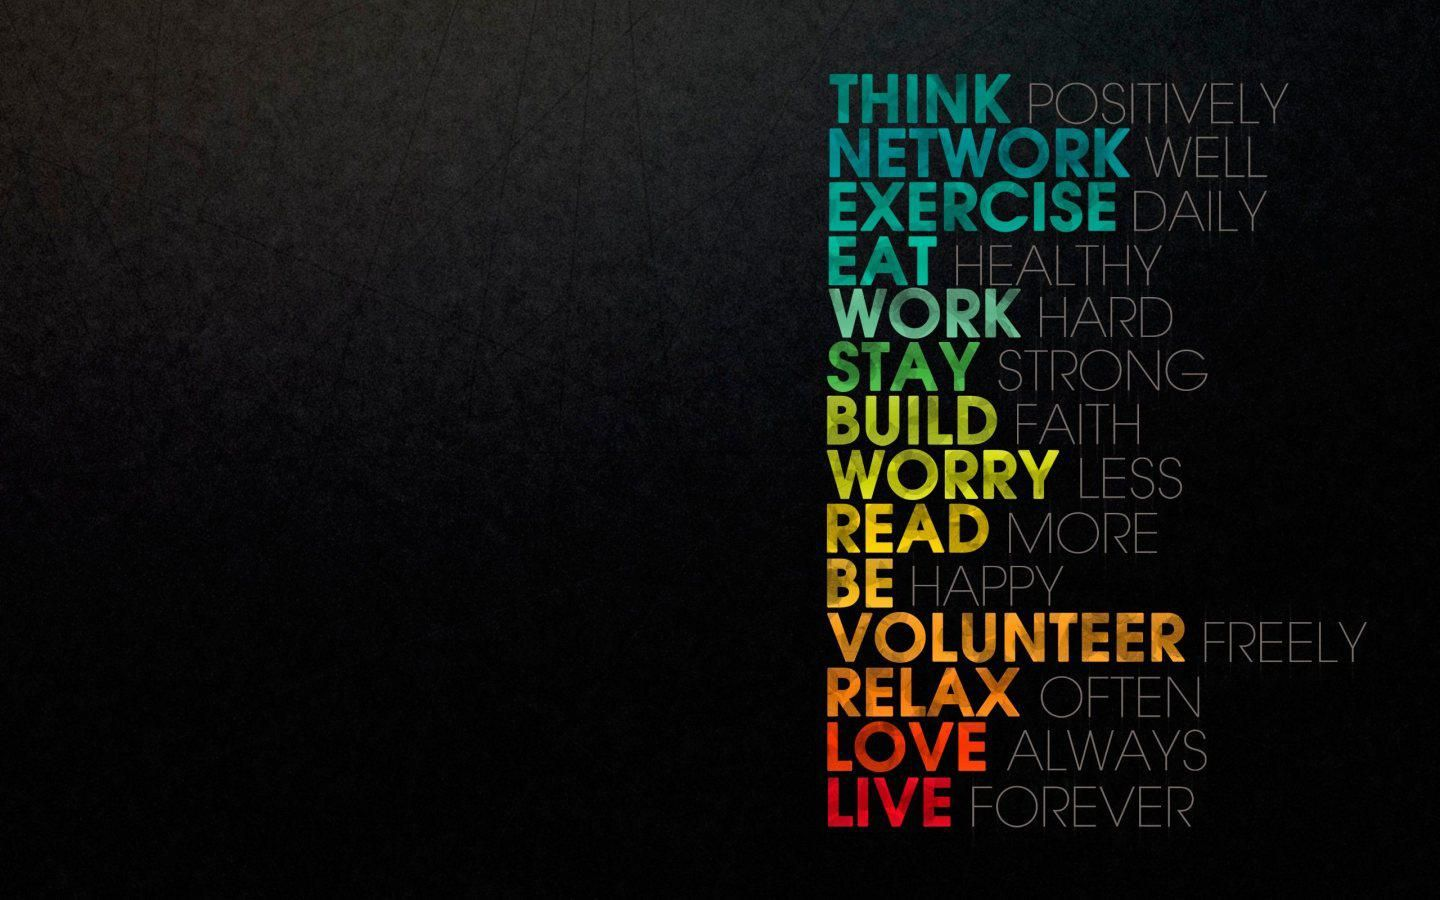 Quote Wallpapers For Desktop Inspirational Quotes Wallpapers Motivational Wallpaper Hd Quotes